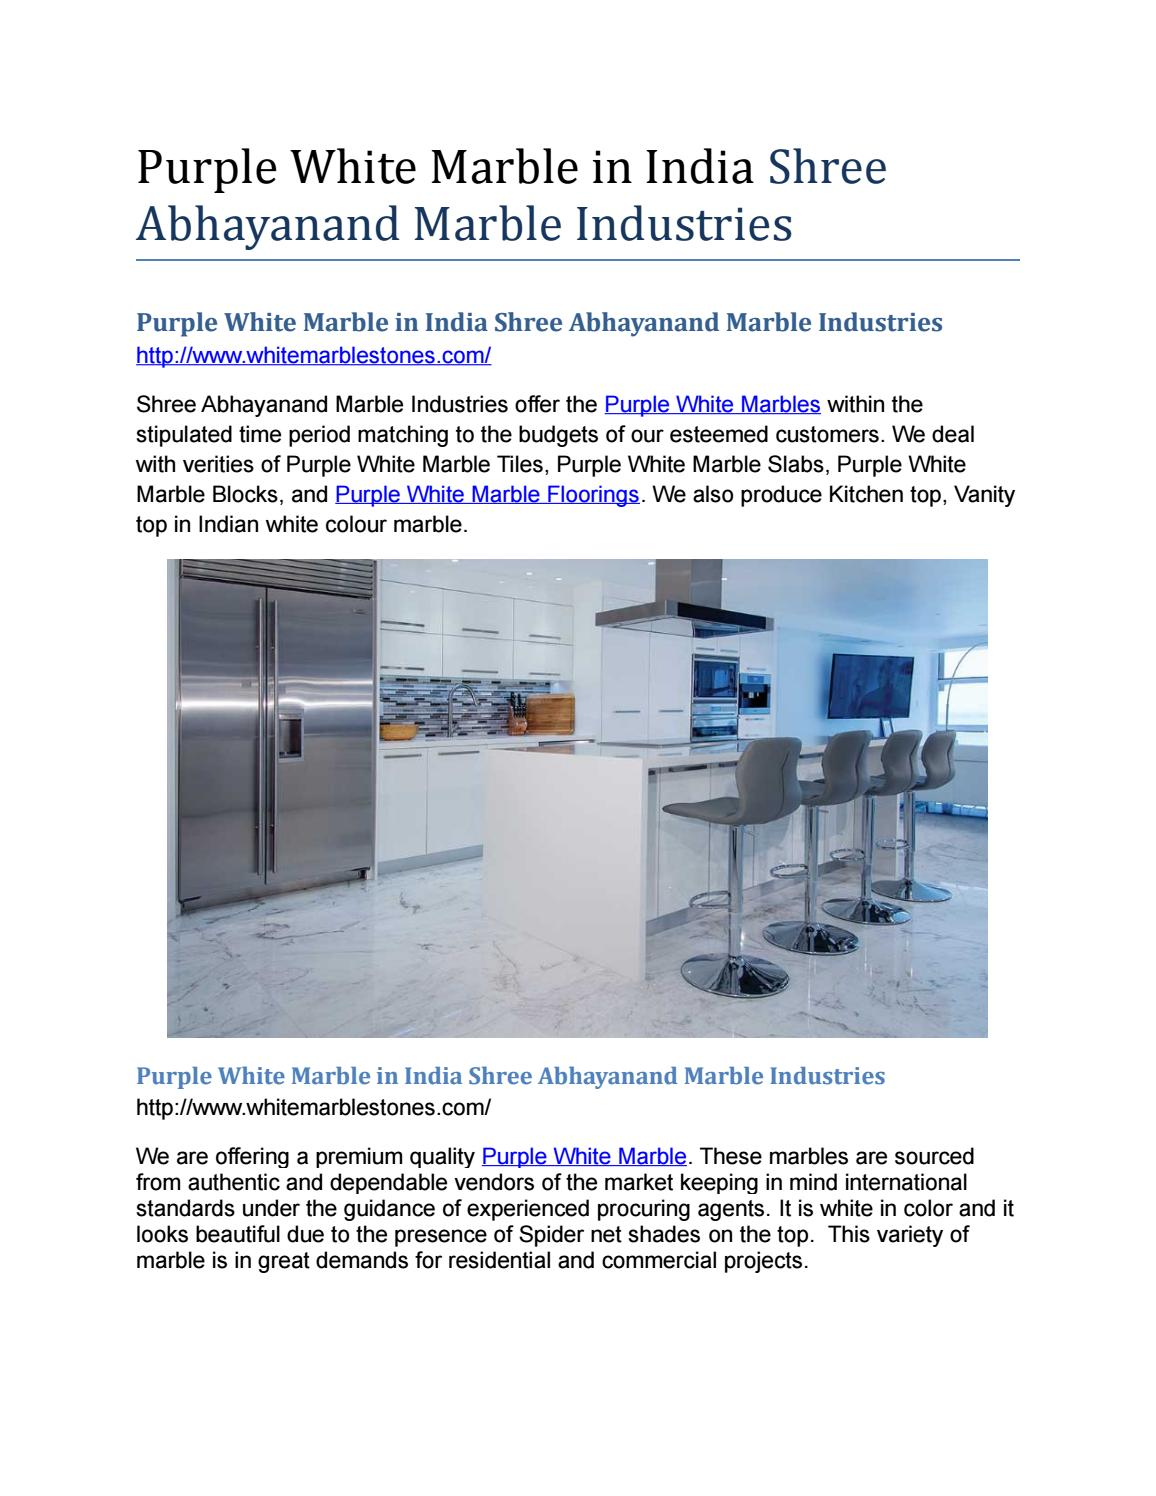 Purple White Marble In India Shree Abhayanand Marble Industries By Shreemarbles Issuu